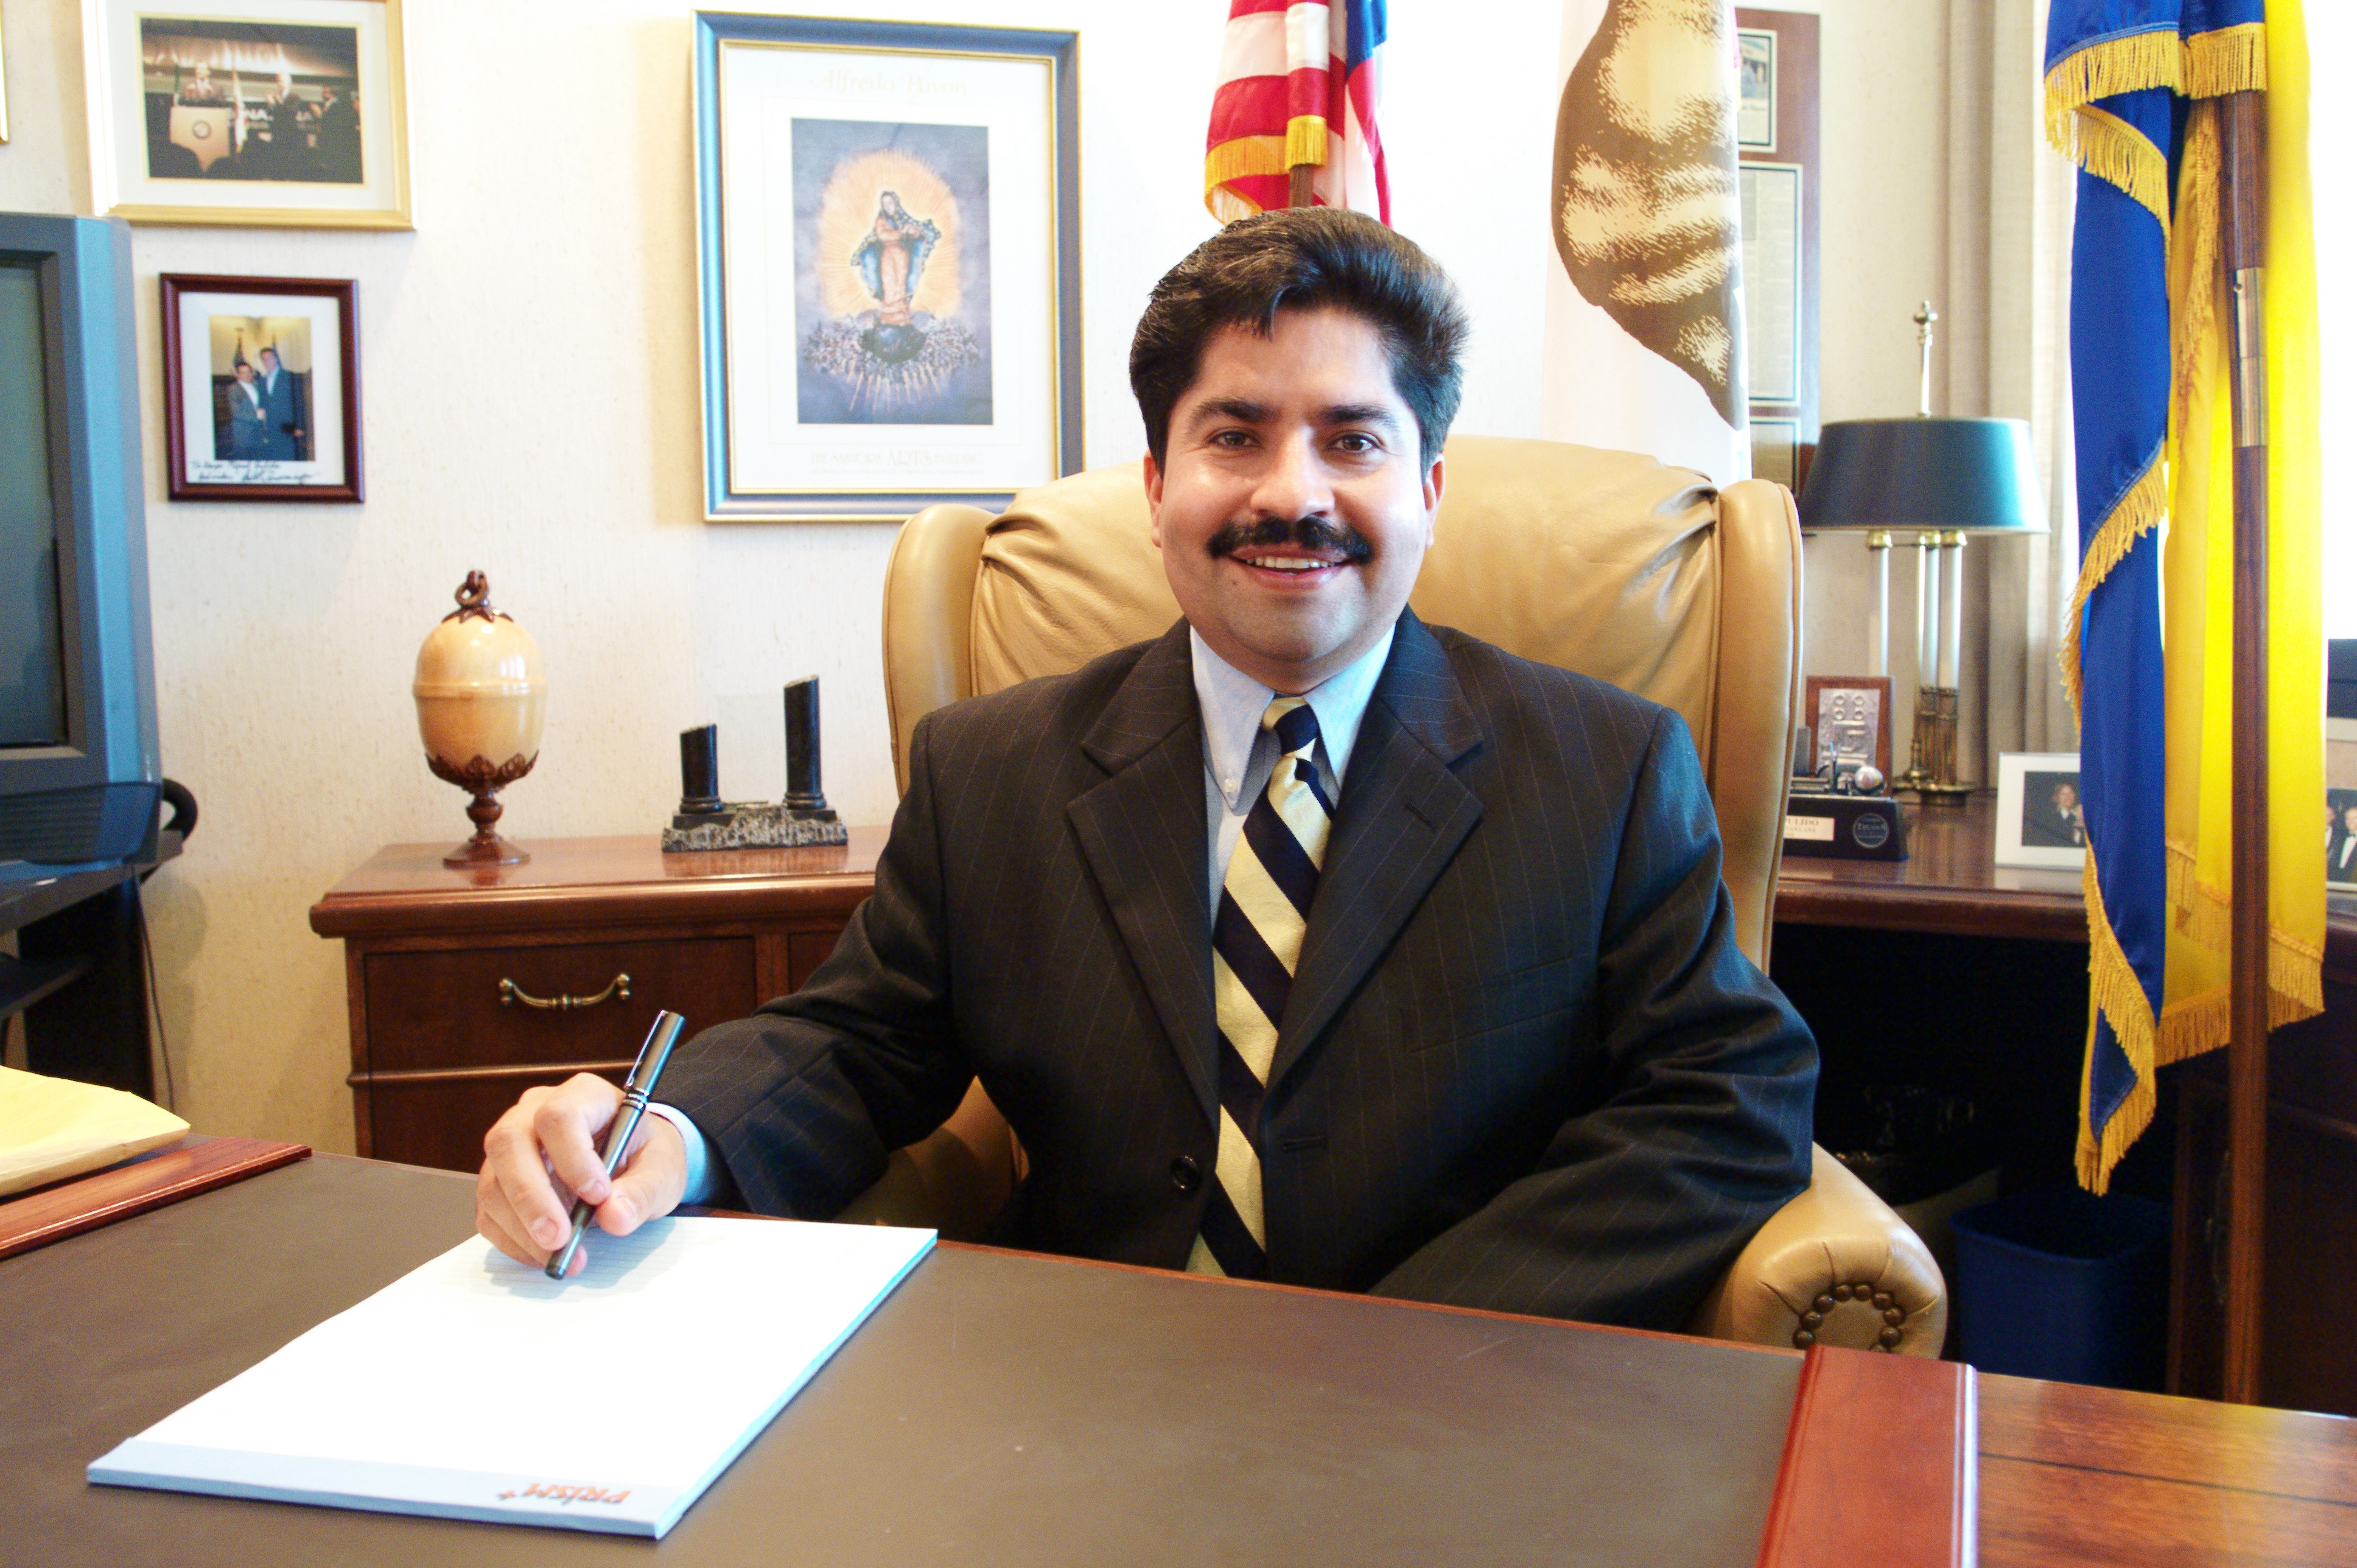 Well, no surprise. Assemblyman Jose Solorio blew it again. Steven Greenhut gave us the dirty details in a post at the Orange Punch blog: Assembly Public Safety Committee Chairman Jose […]